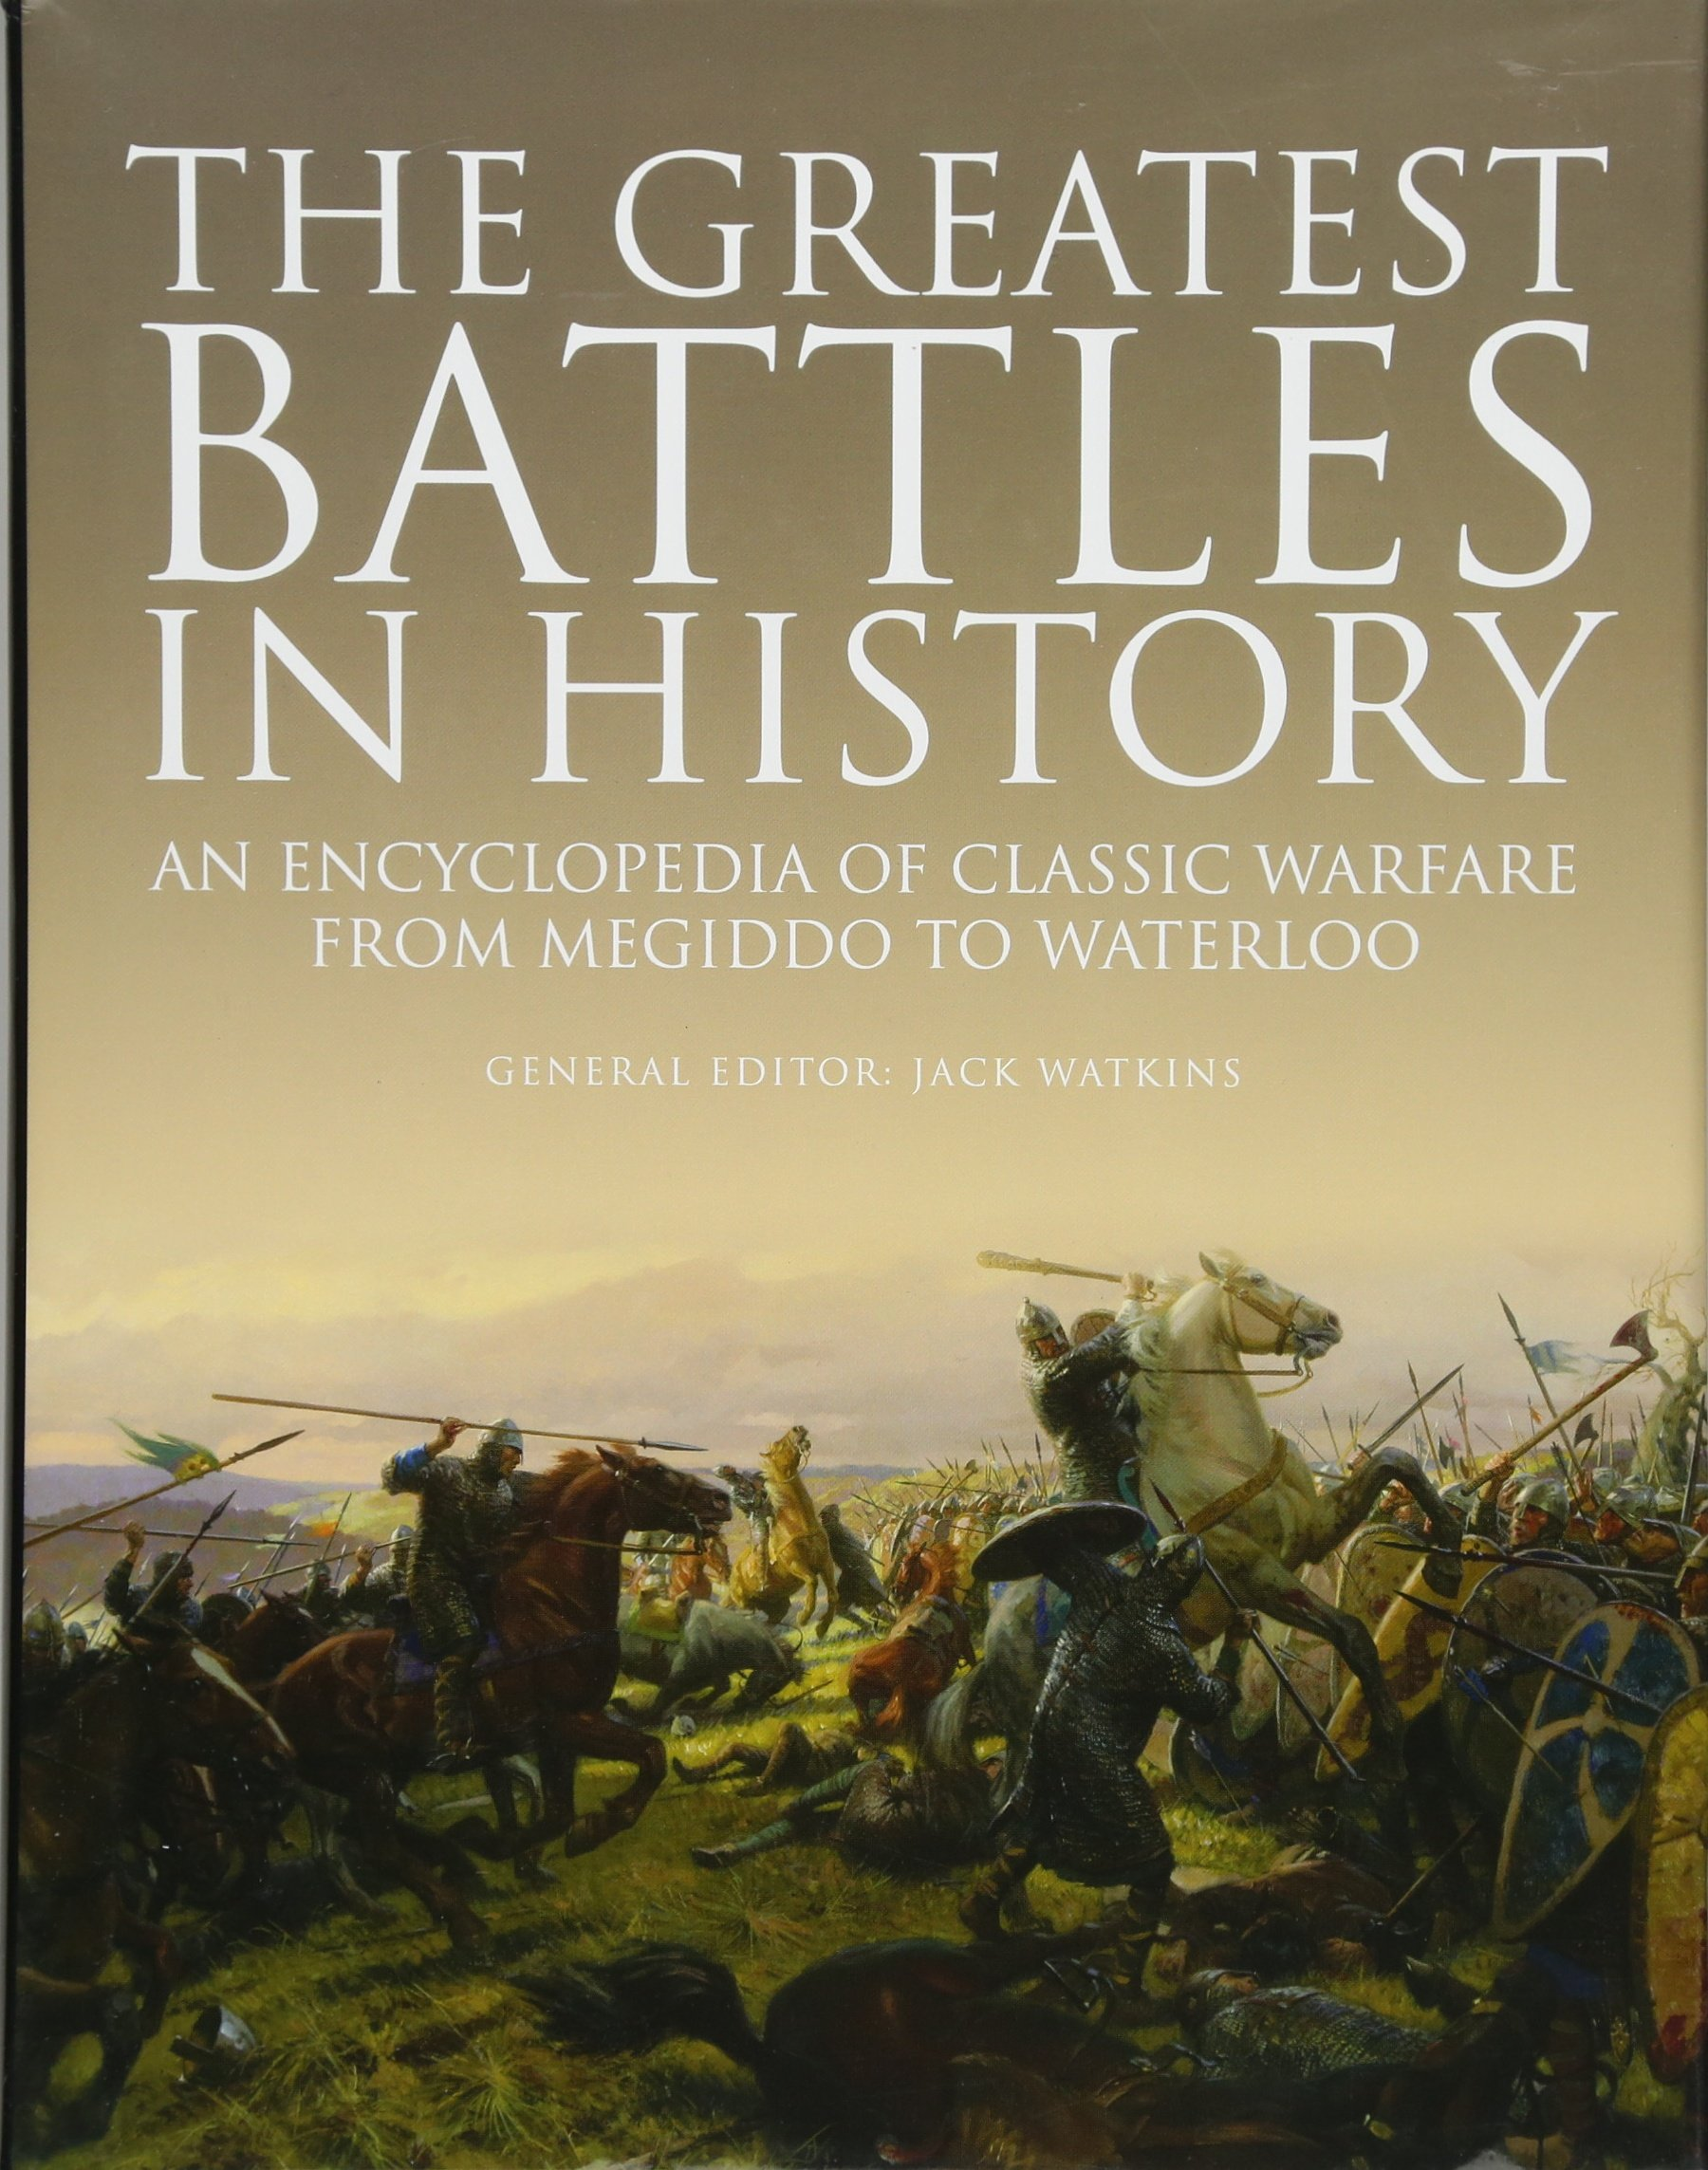 The Greatest Battles in History: An Encyclopedia of Classic Warfare From Megiddo To Waterloo